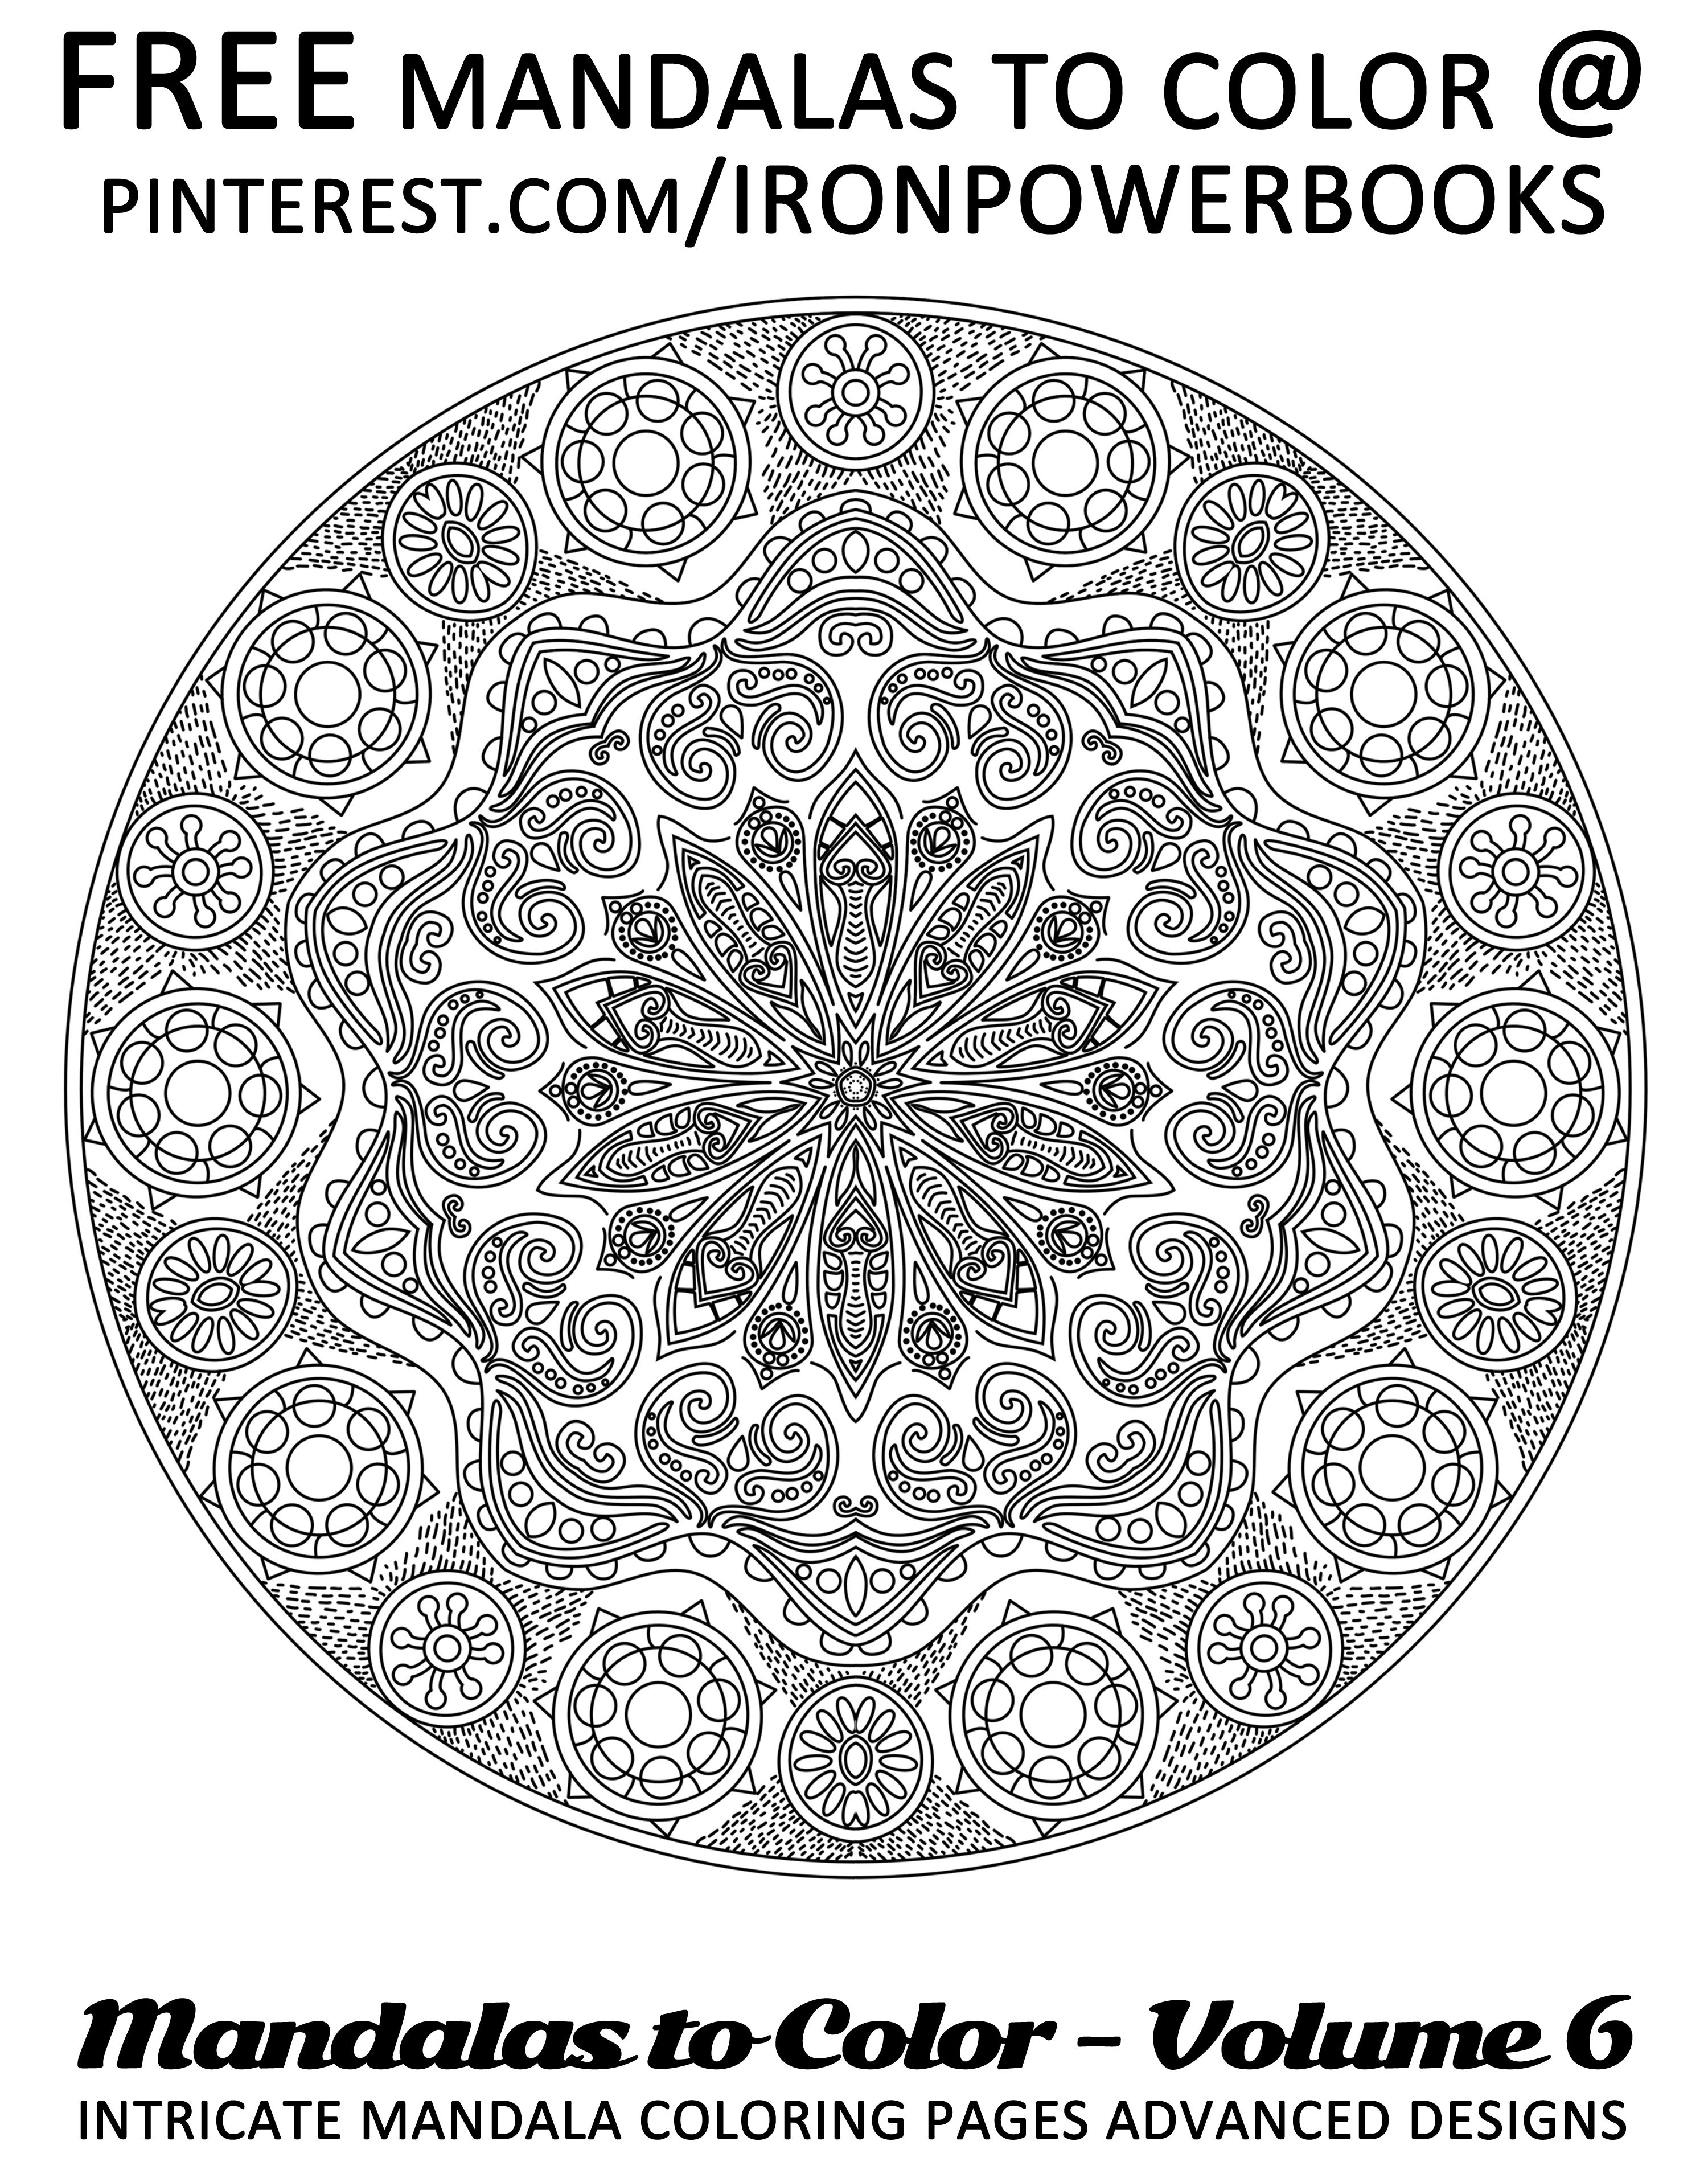 Coloring Pages Of Mandala To Print Mandalas Coloringpagesforadults More Intricate Mandalas At Mandal Mandala Coloring Mandala Coloring Pages Coloring Pages